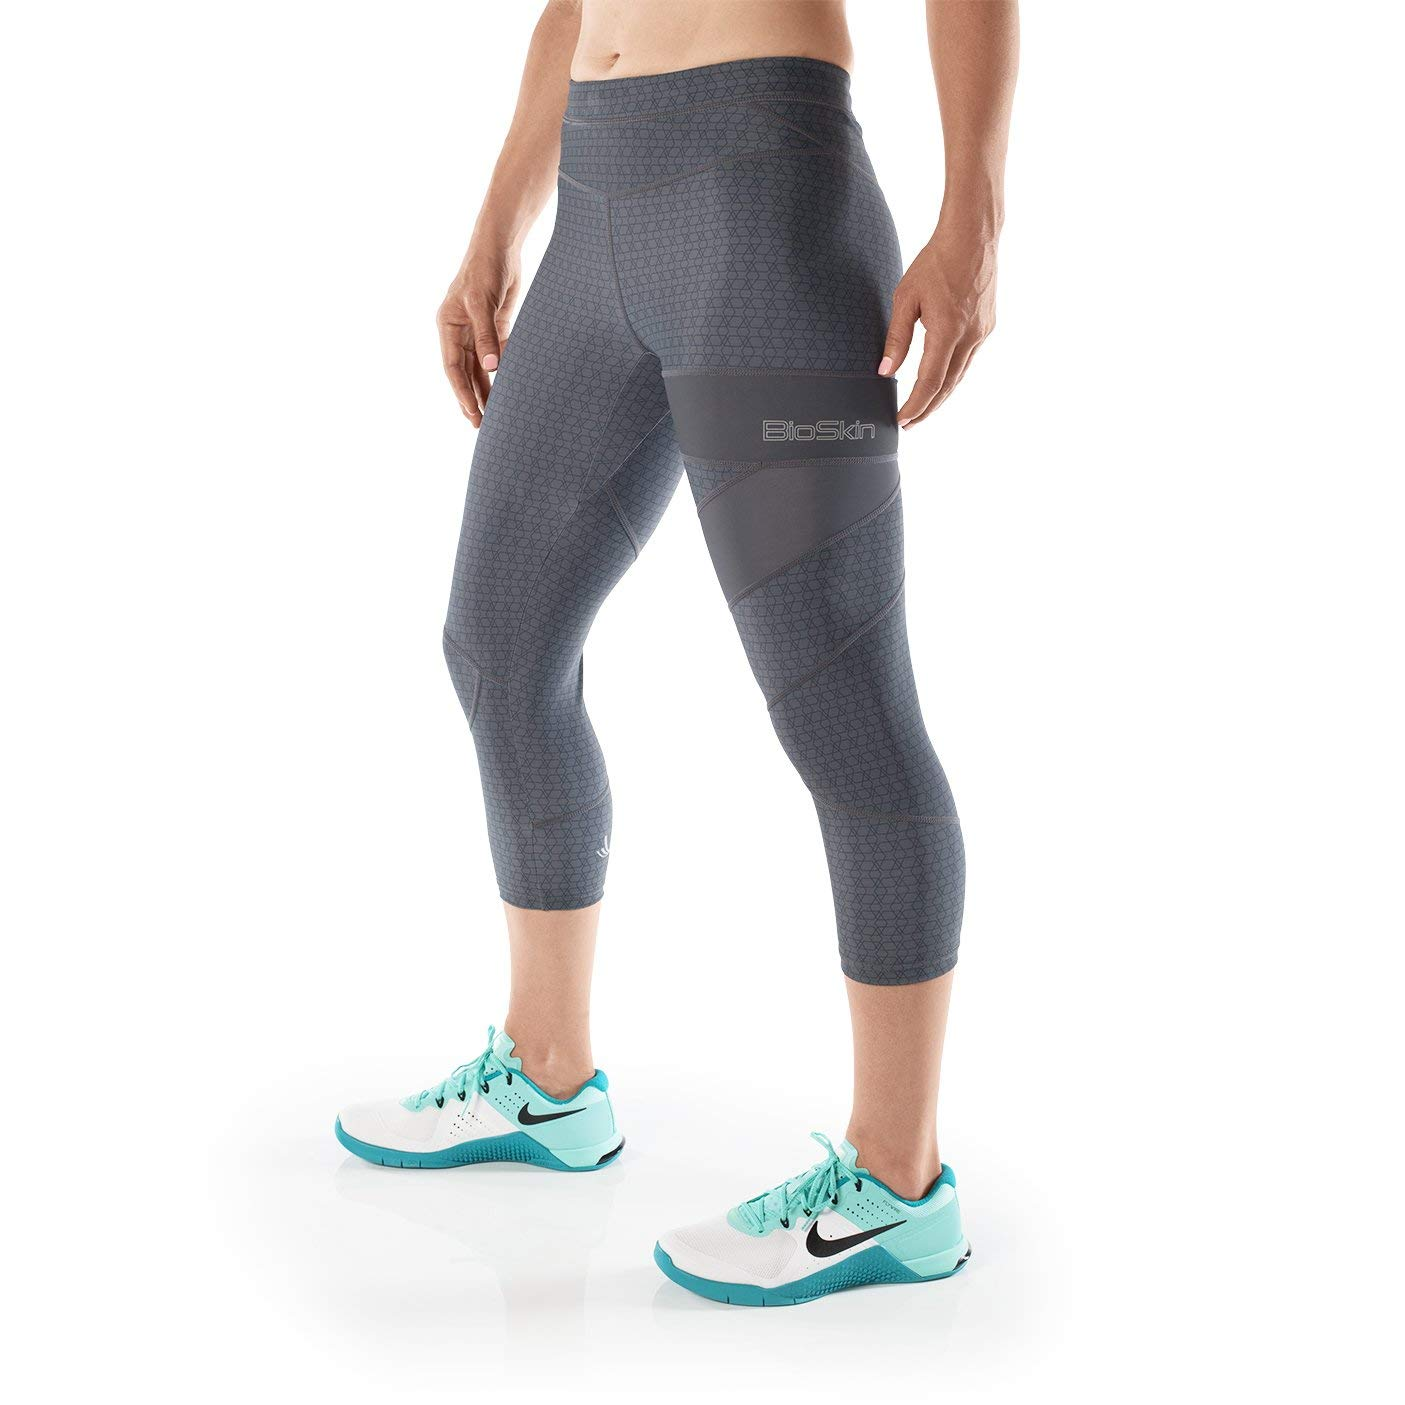 83de9fd67b747 Get Quotations · BioSkin Perfect Fit Running Compression Capris, 3/4  Leggings with Phone Pocket - Gray